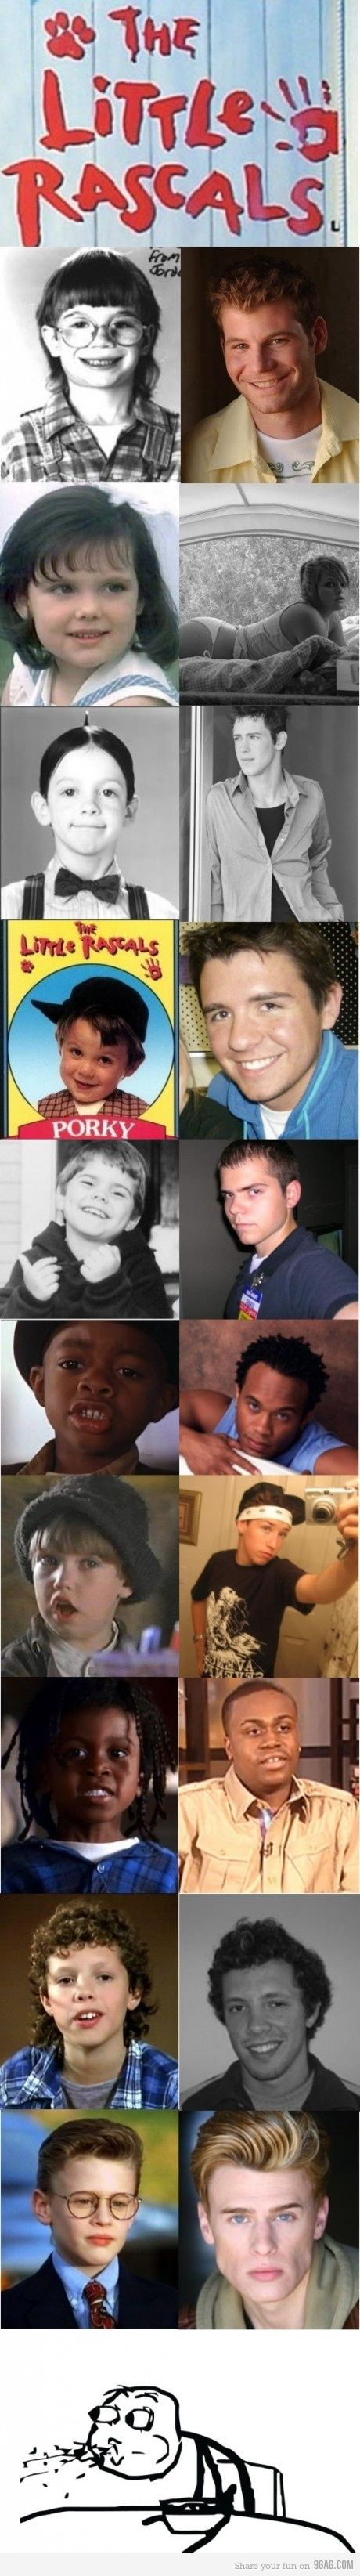 The Little Rascals (Then & Now)... you mean they grew up too?? :(